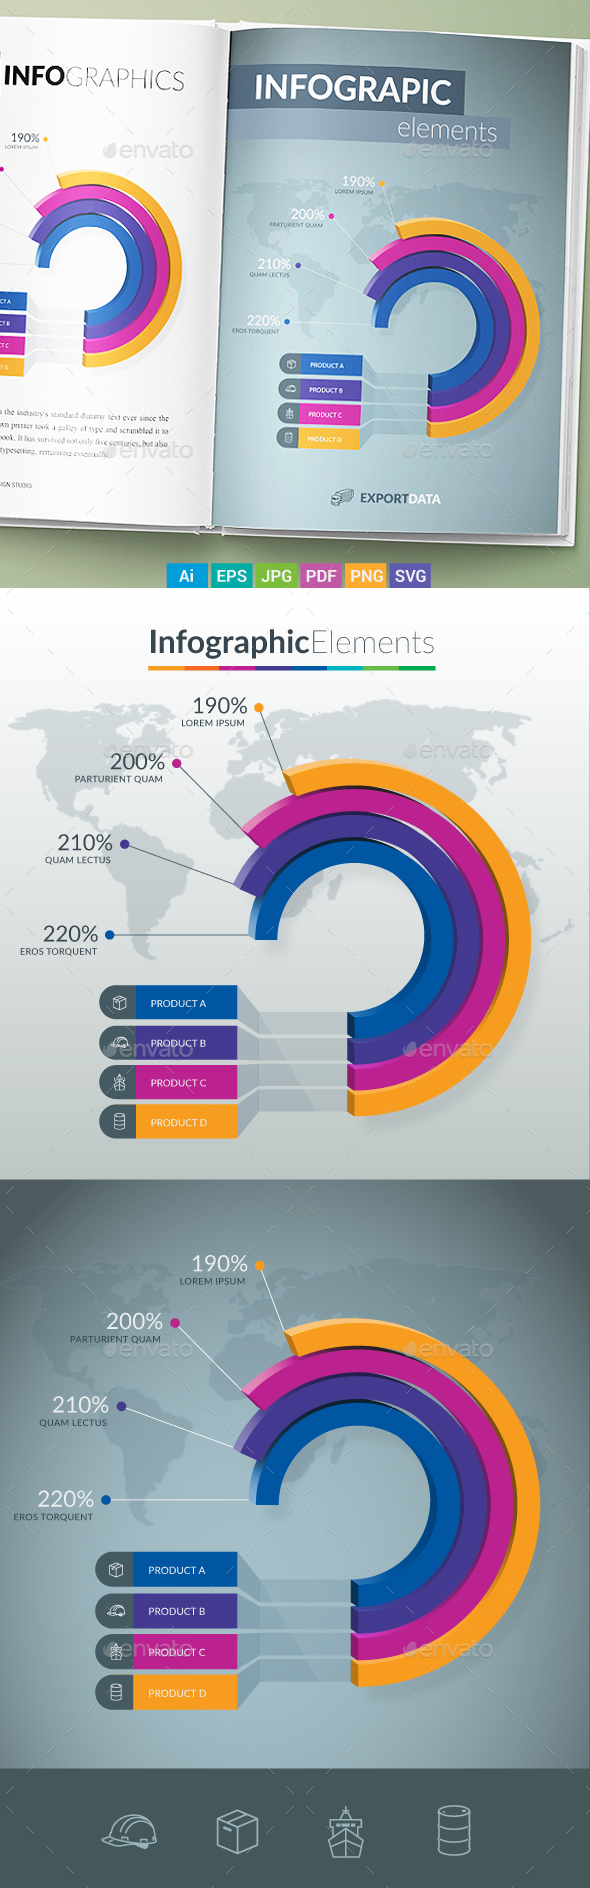 Infographic Elements - Pie Chart - Infographics